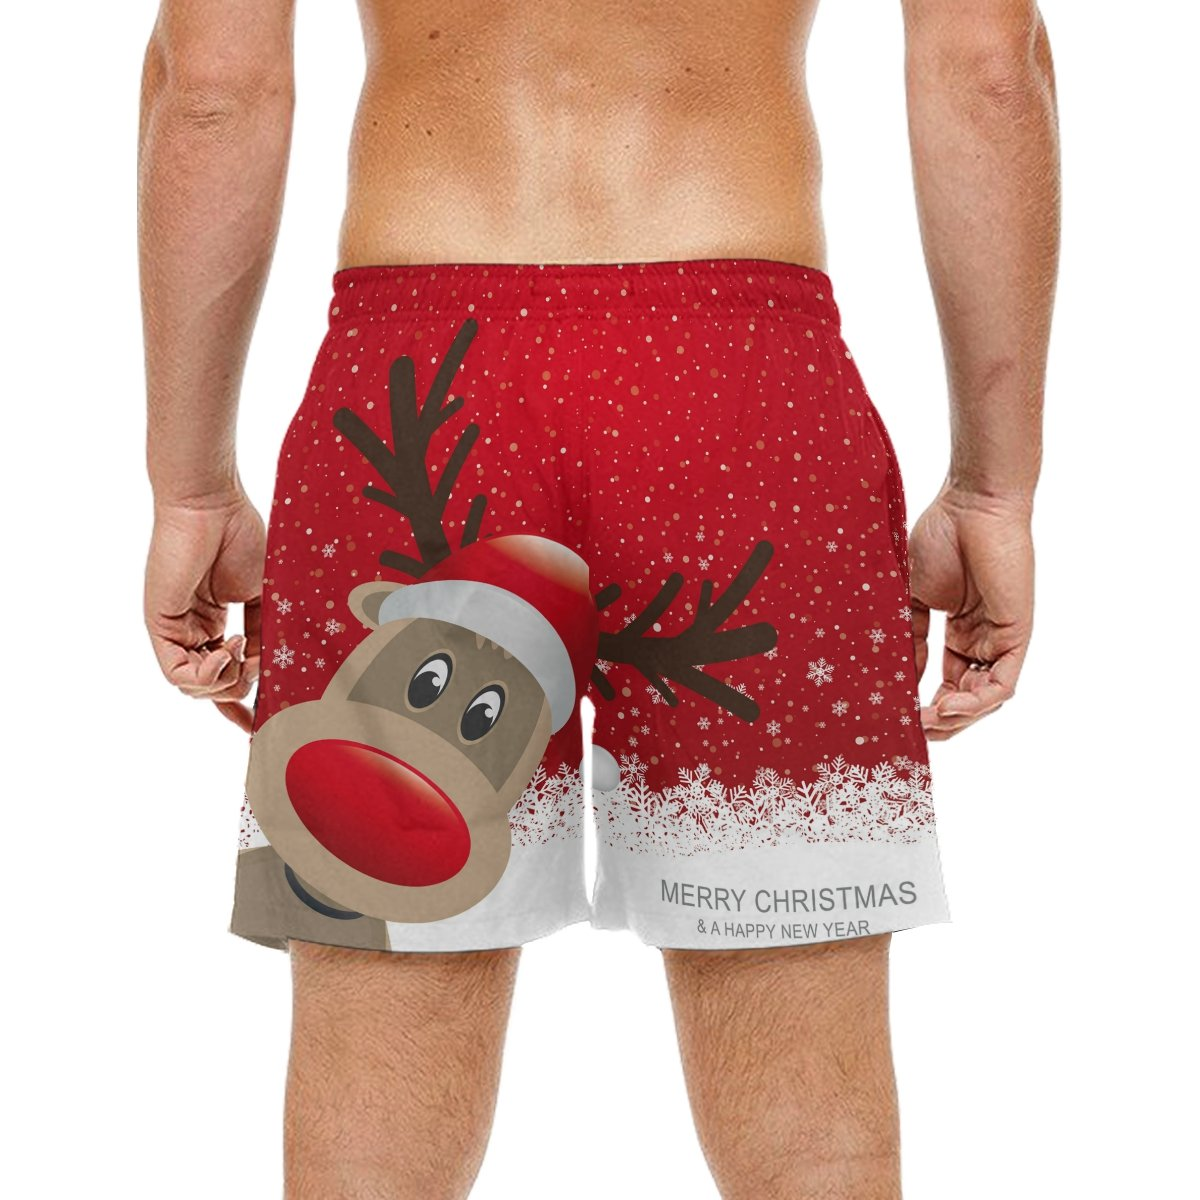 d88beeed22 COOSUN Men's Christmas Reindeer Beach Board Shorts Quick Dry Swim Trunk:  Amazon.co.uk: Clothing